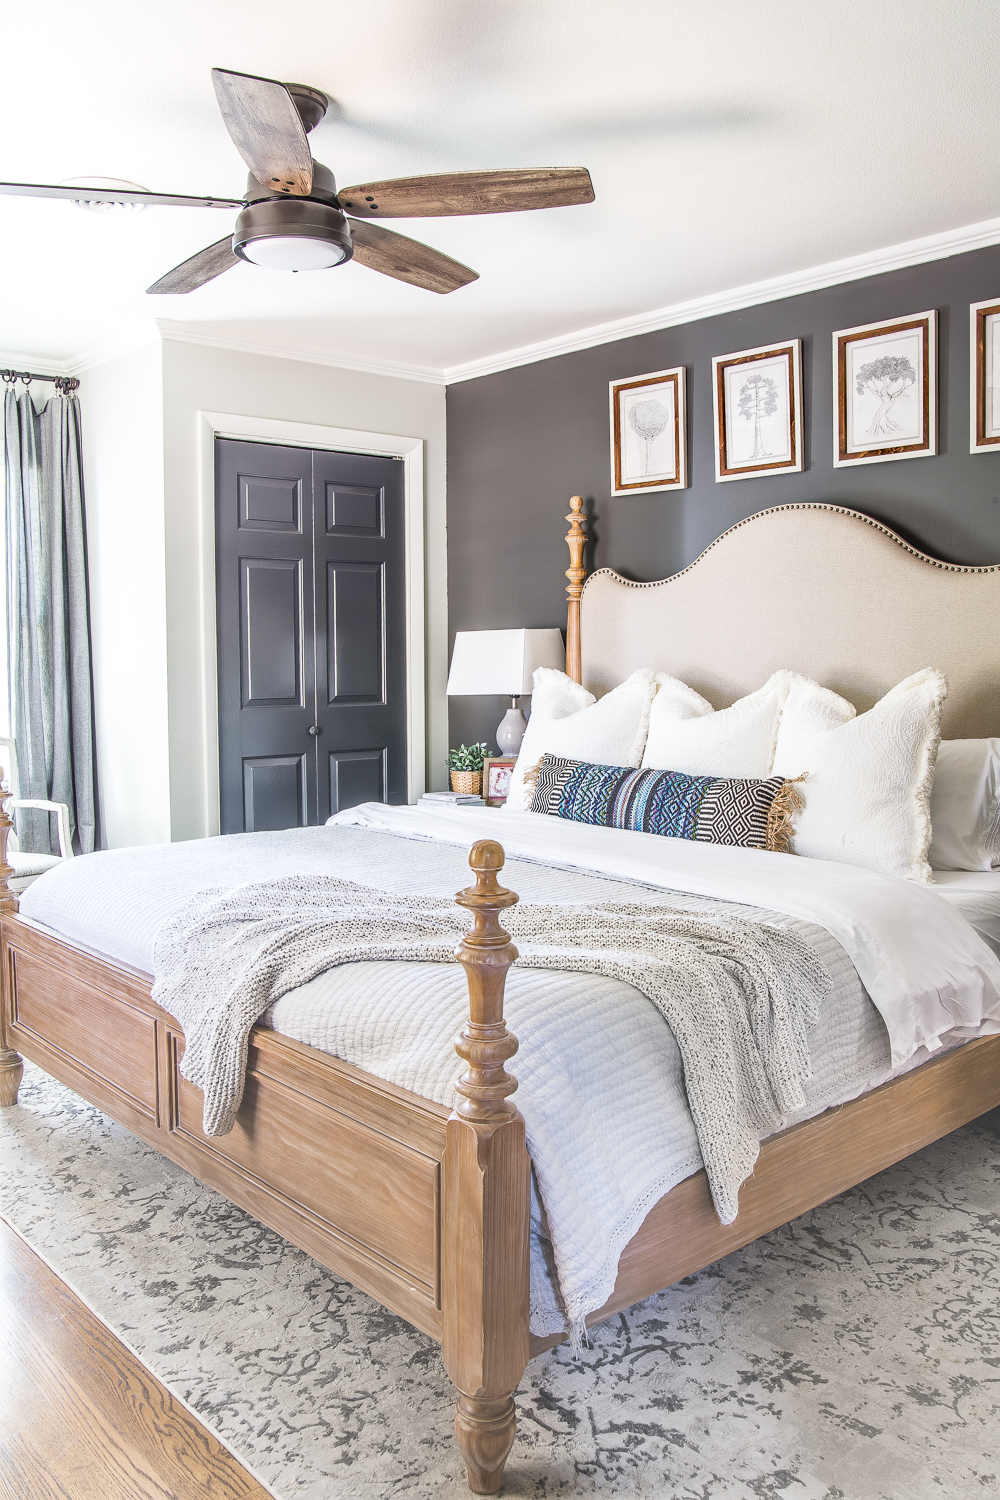 20 Gorgeous Modern Ceiling Fans | Rustic master bedroom ...